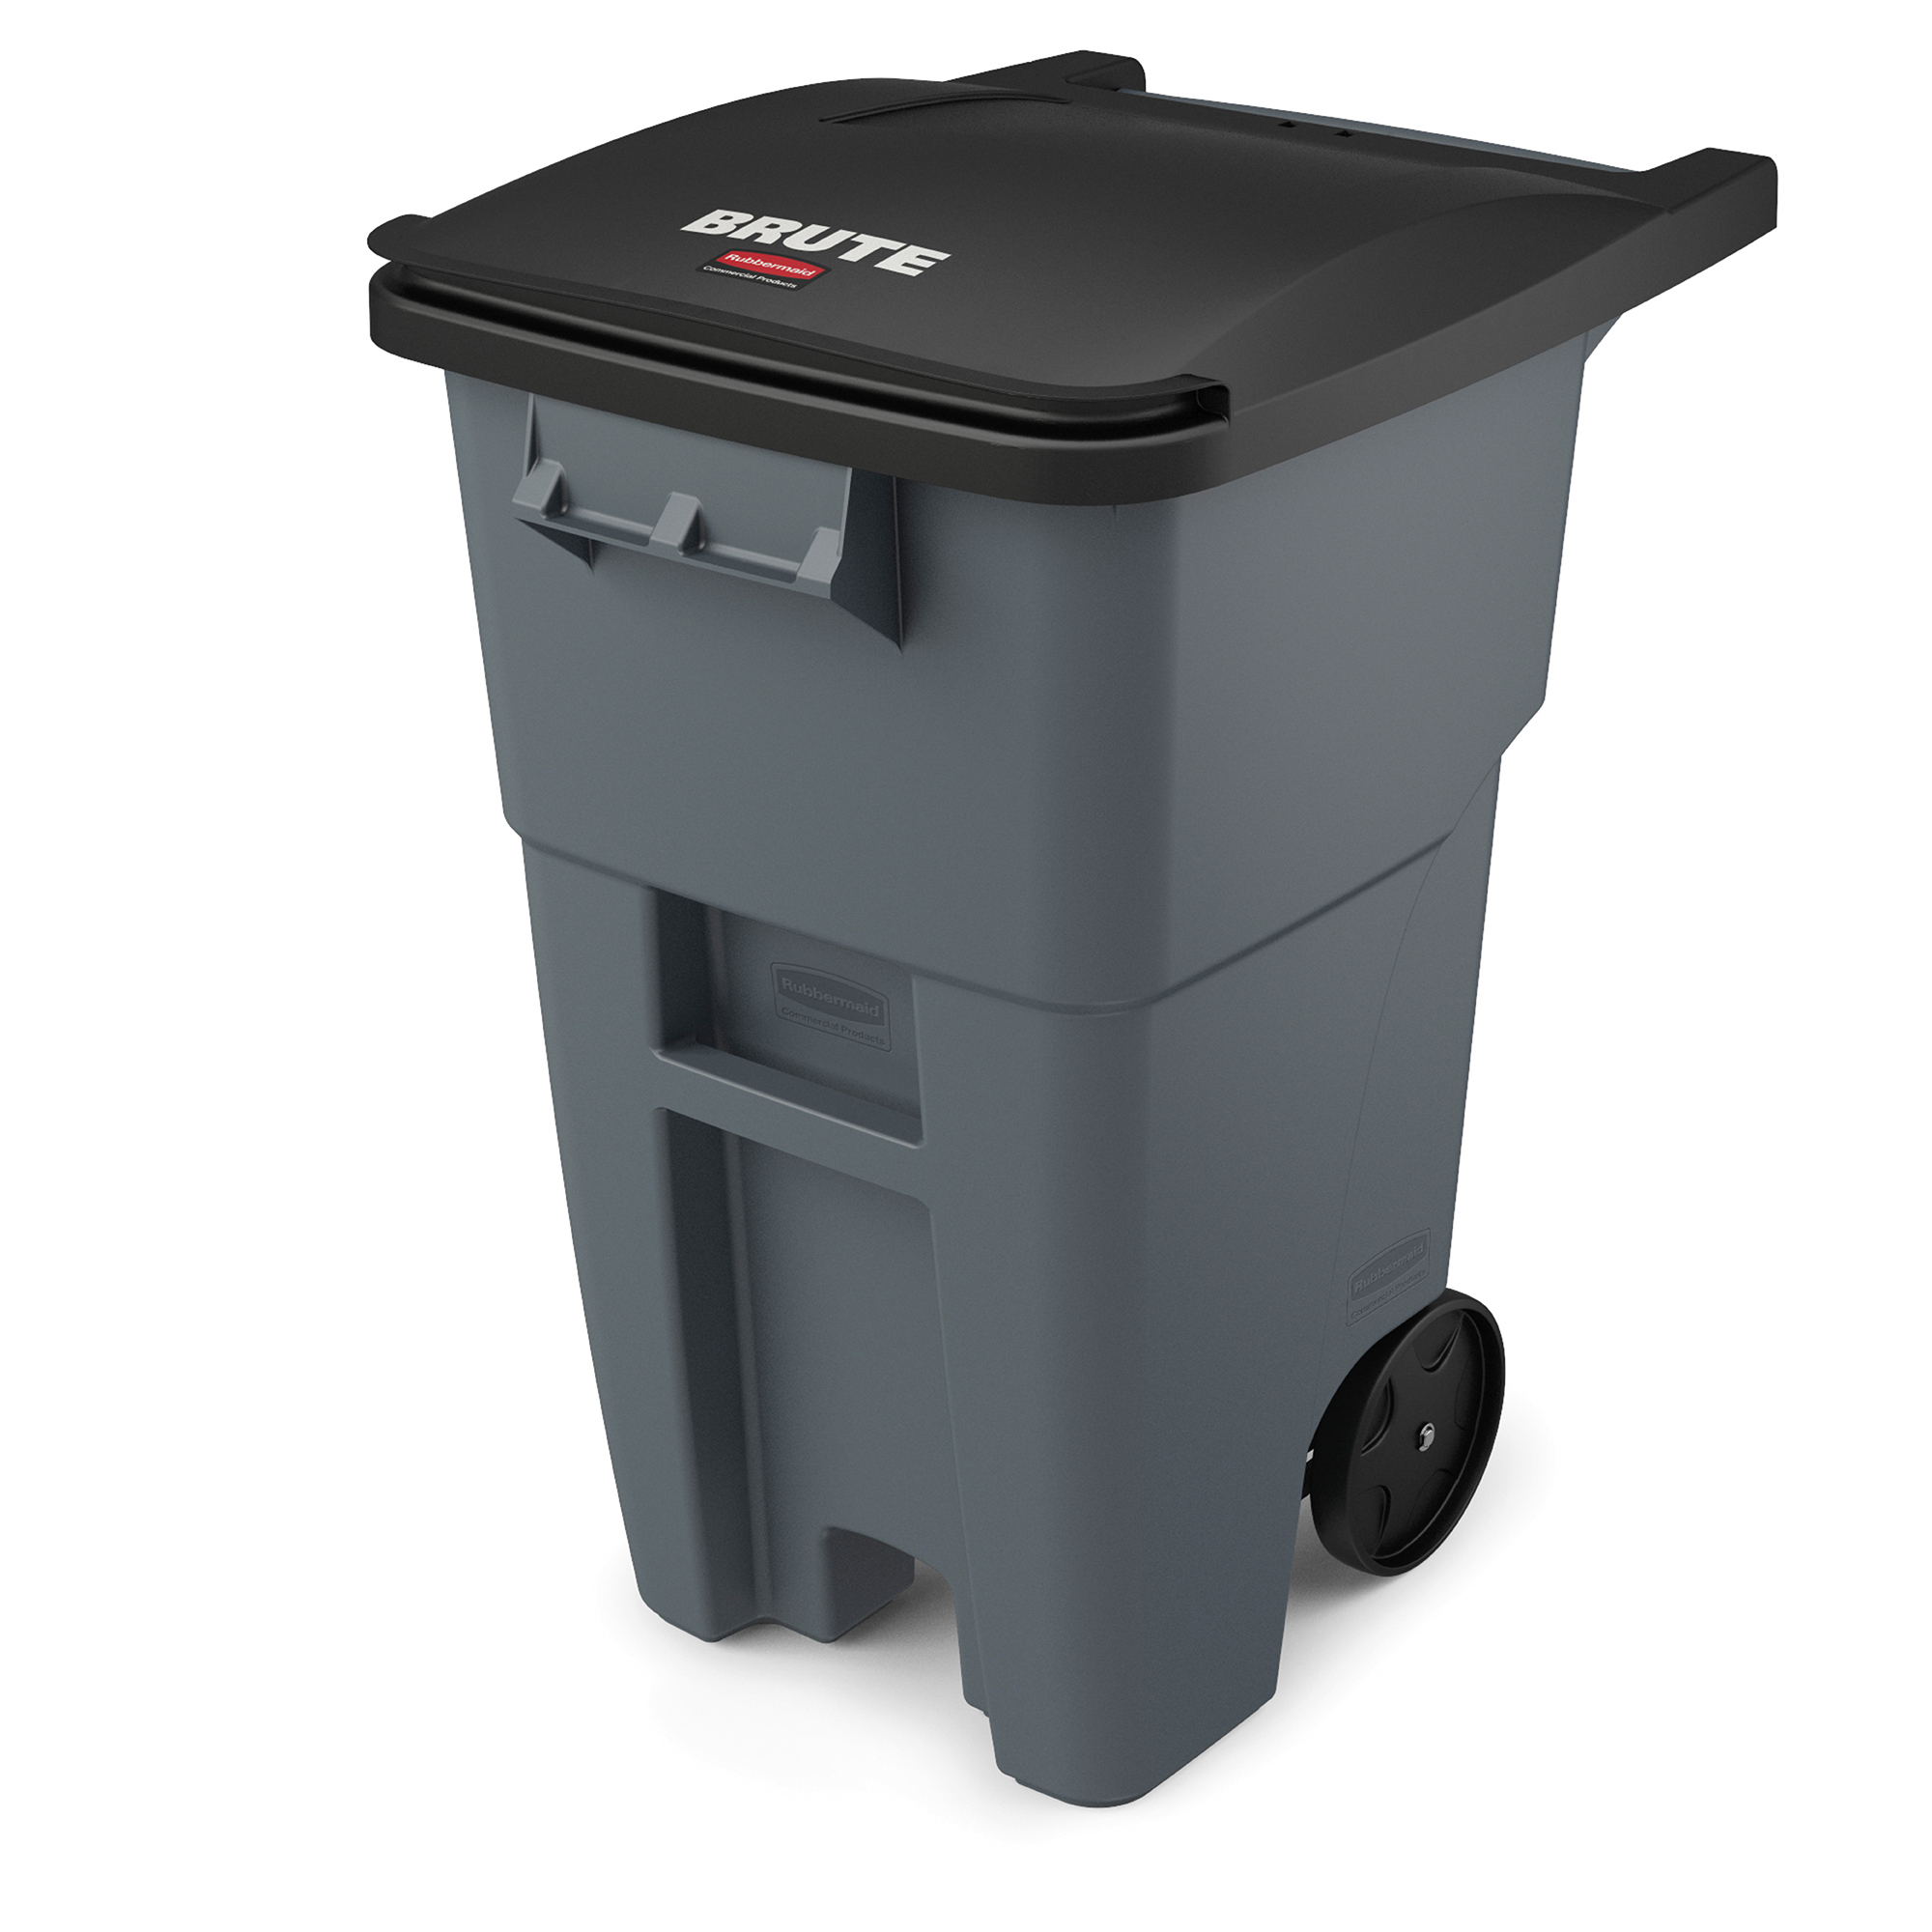 Rubbermaid Commercial Products FG9W2700GRAY BRUTE Roll-Out Trash Can with Lid, Square, 50 Gallon, Gray